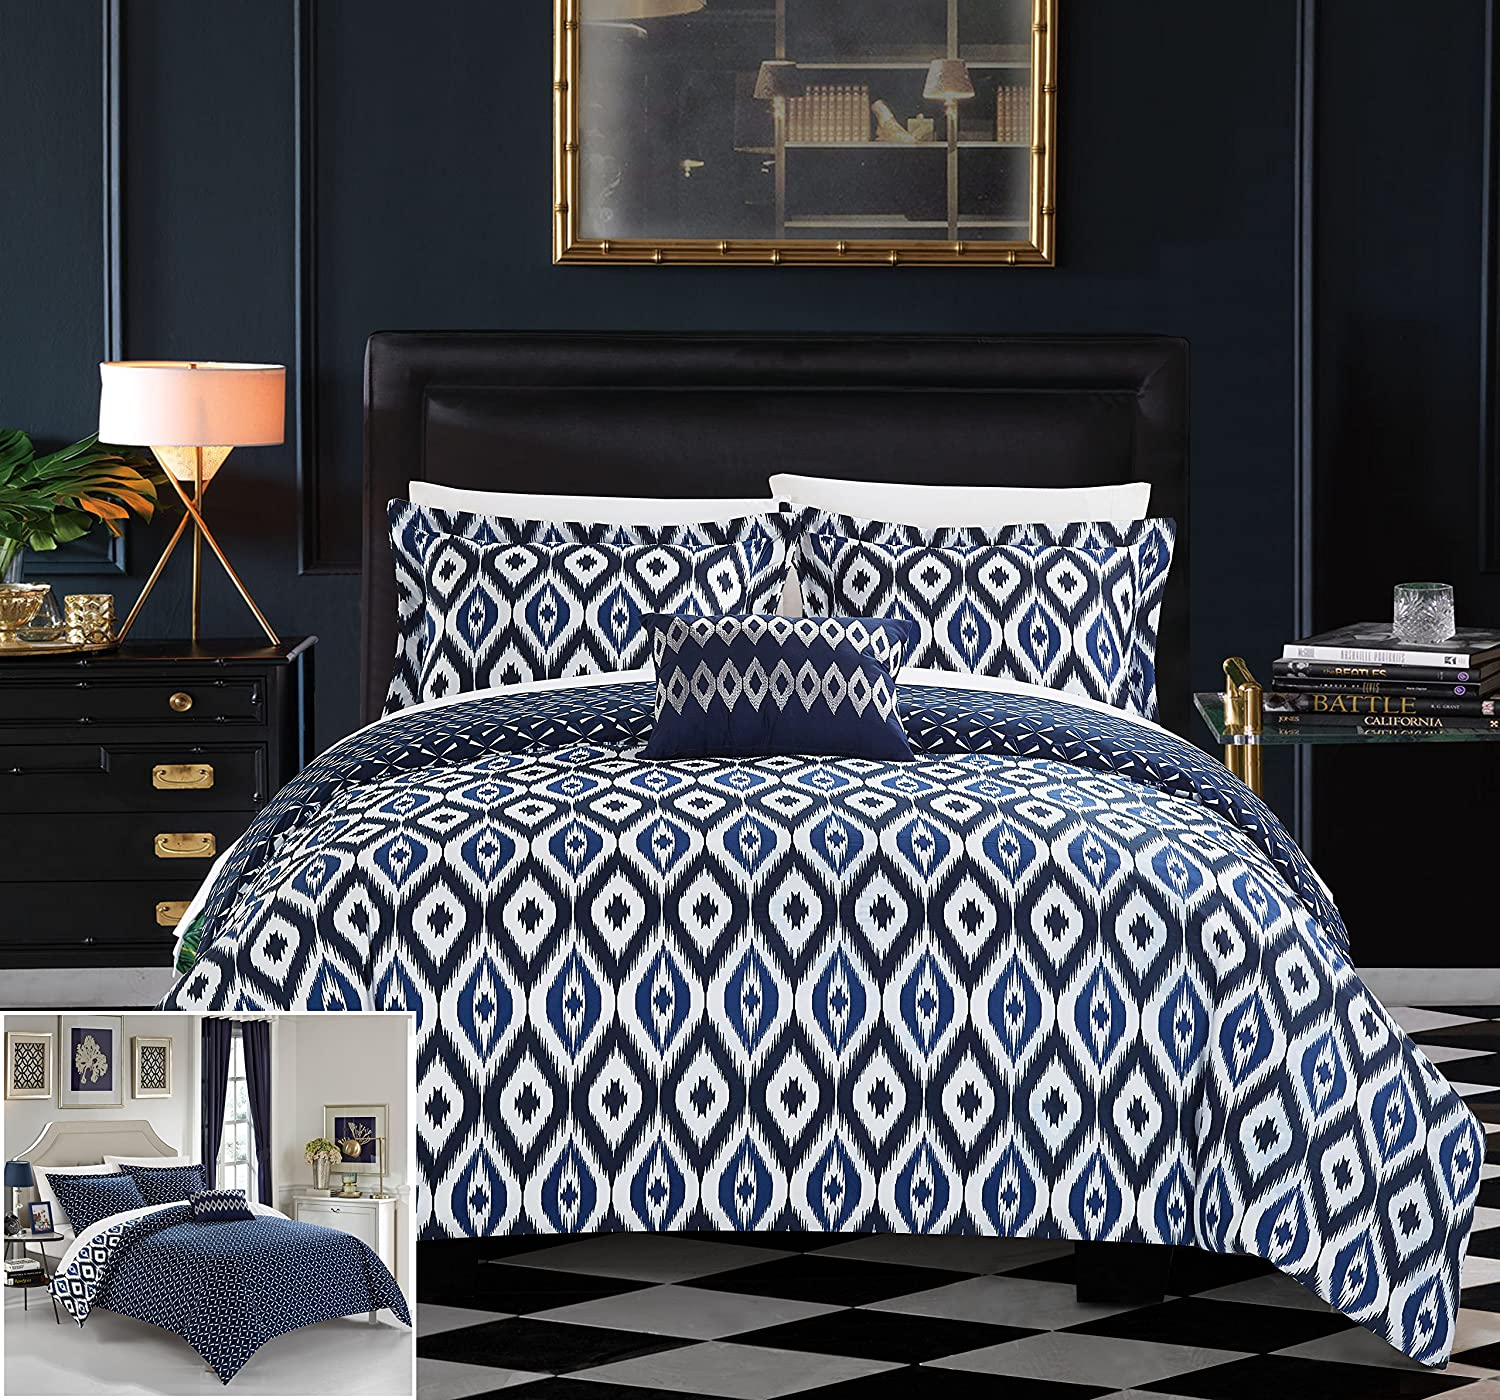 Chic Home 4 Piece Normani Reversible Ikat Diamond and Contemporary Geometric Pattern Print Technique King Duvet Cover Set Navy